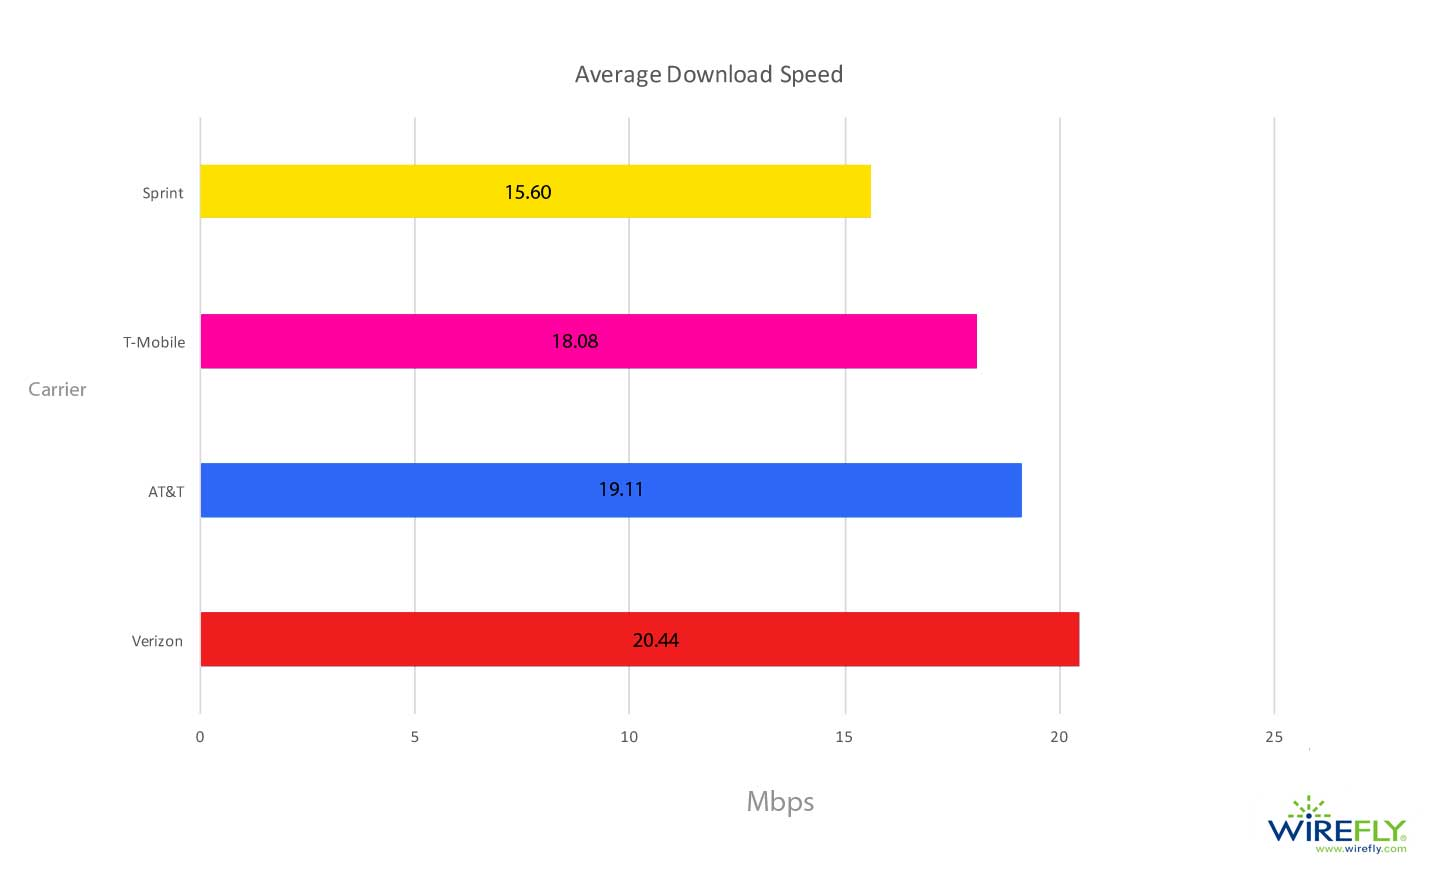 Graph of Average Mobile Carrier Download Speed in the United States (Q4 2017 - Q1 2018)